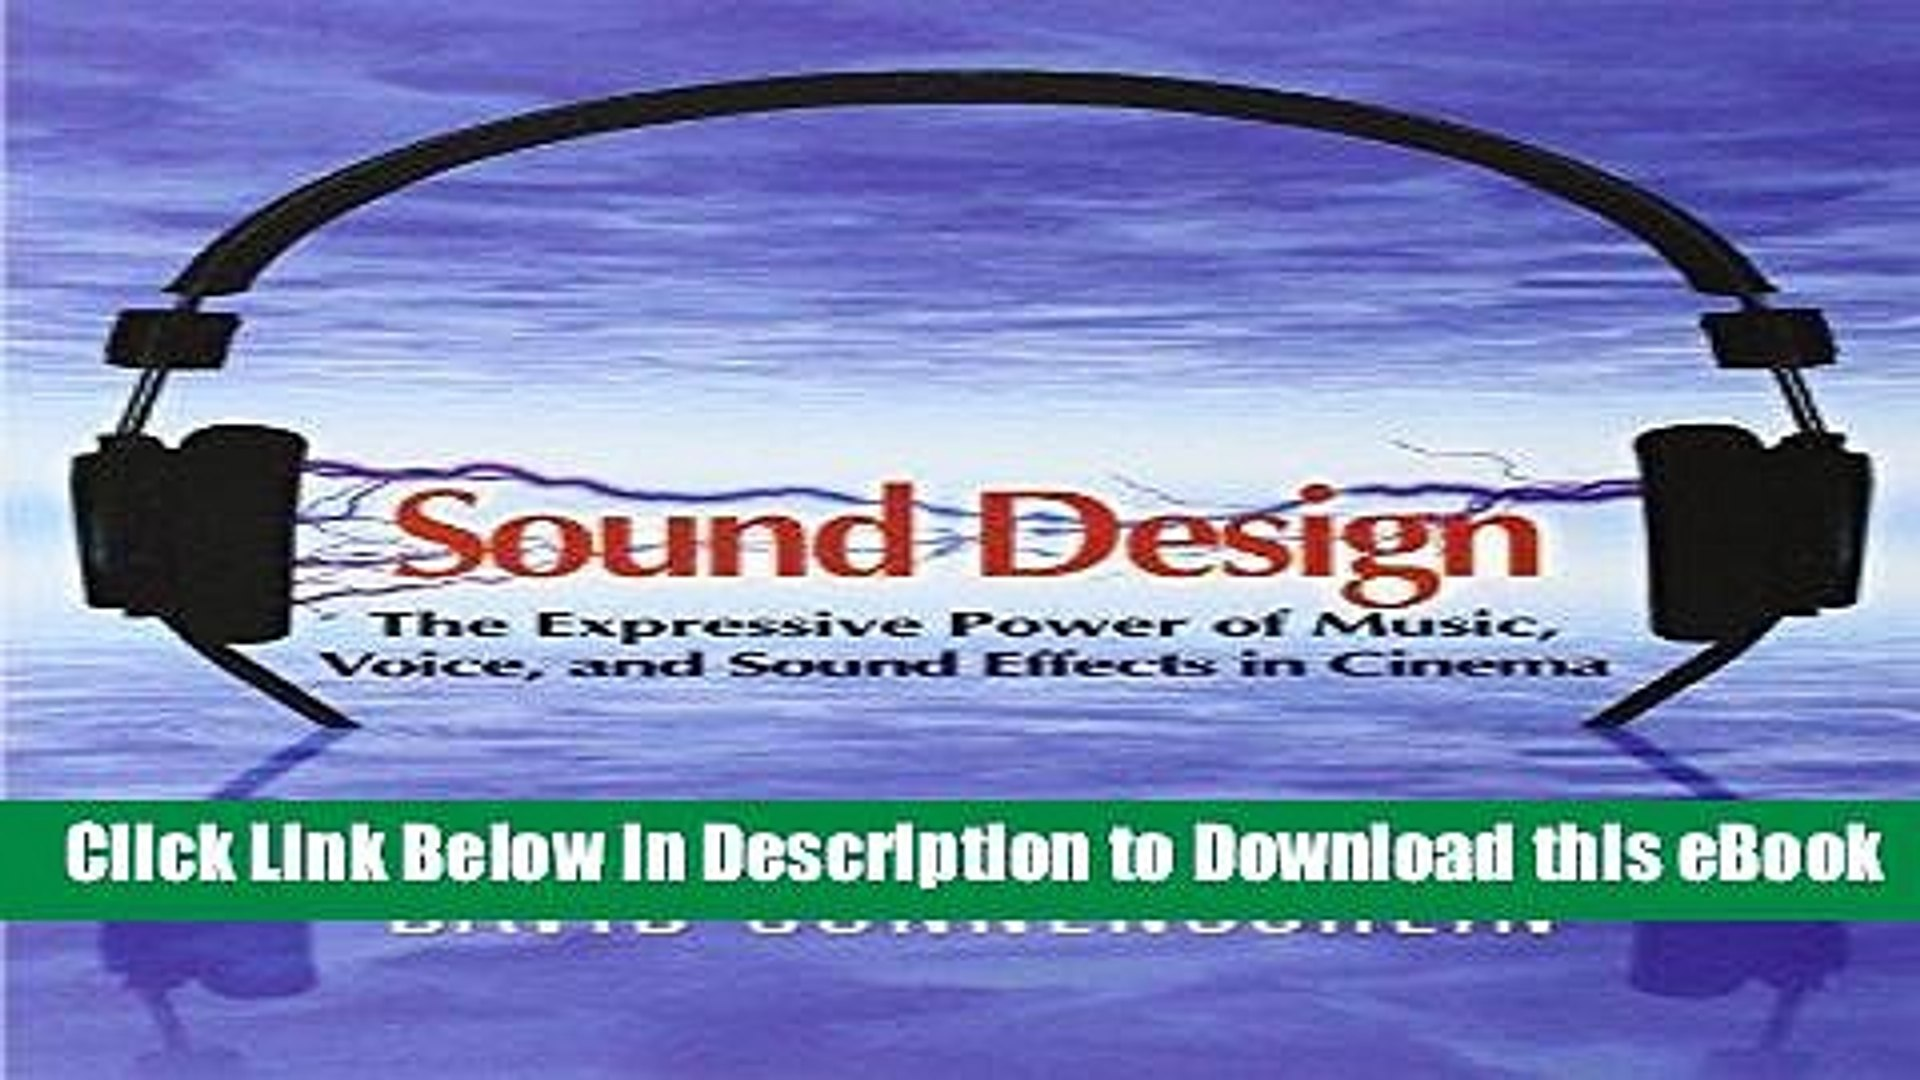 [Read Book] Sound Design: The Expressive Power of Music, Voice and Sound Effects in Cinema Online